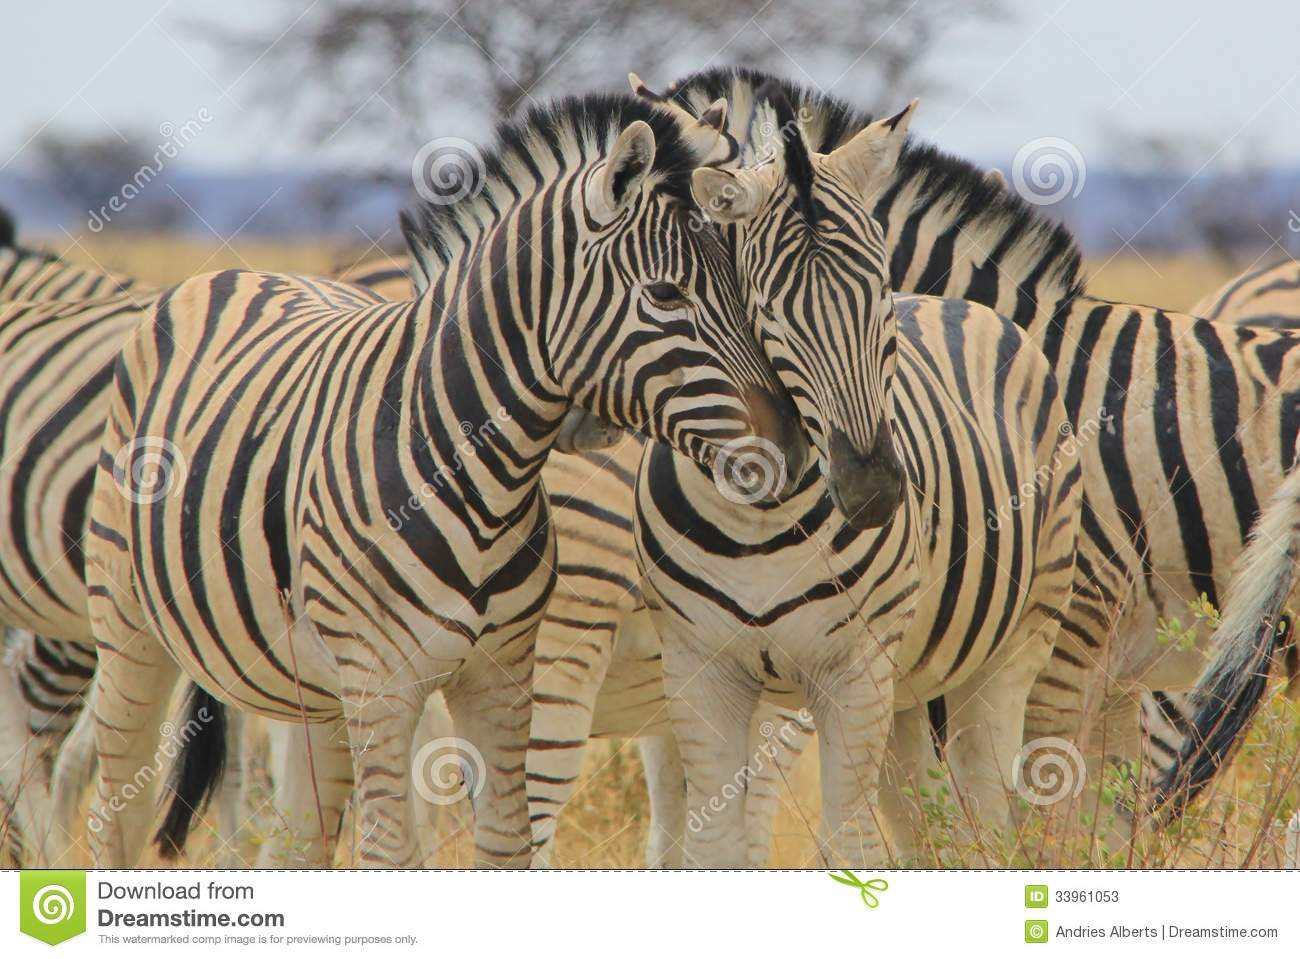 Zebra - Wildlife Background from Africa - Affectionate Stripes of Love